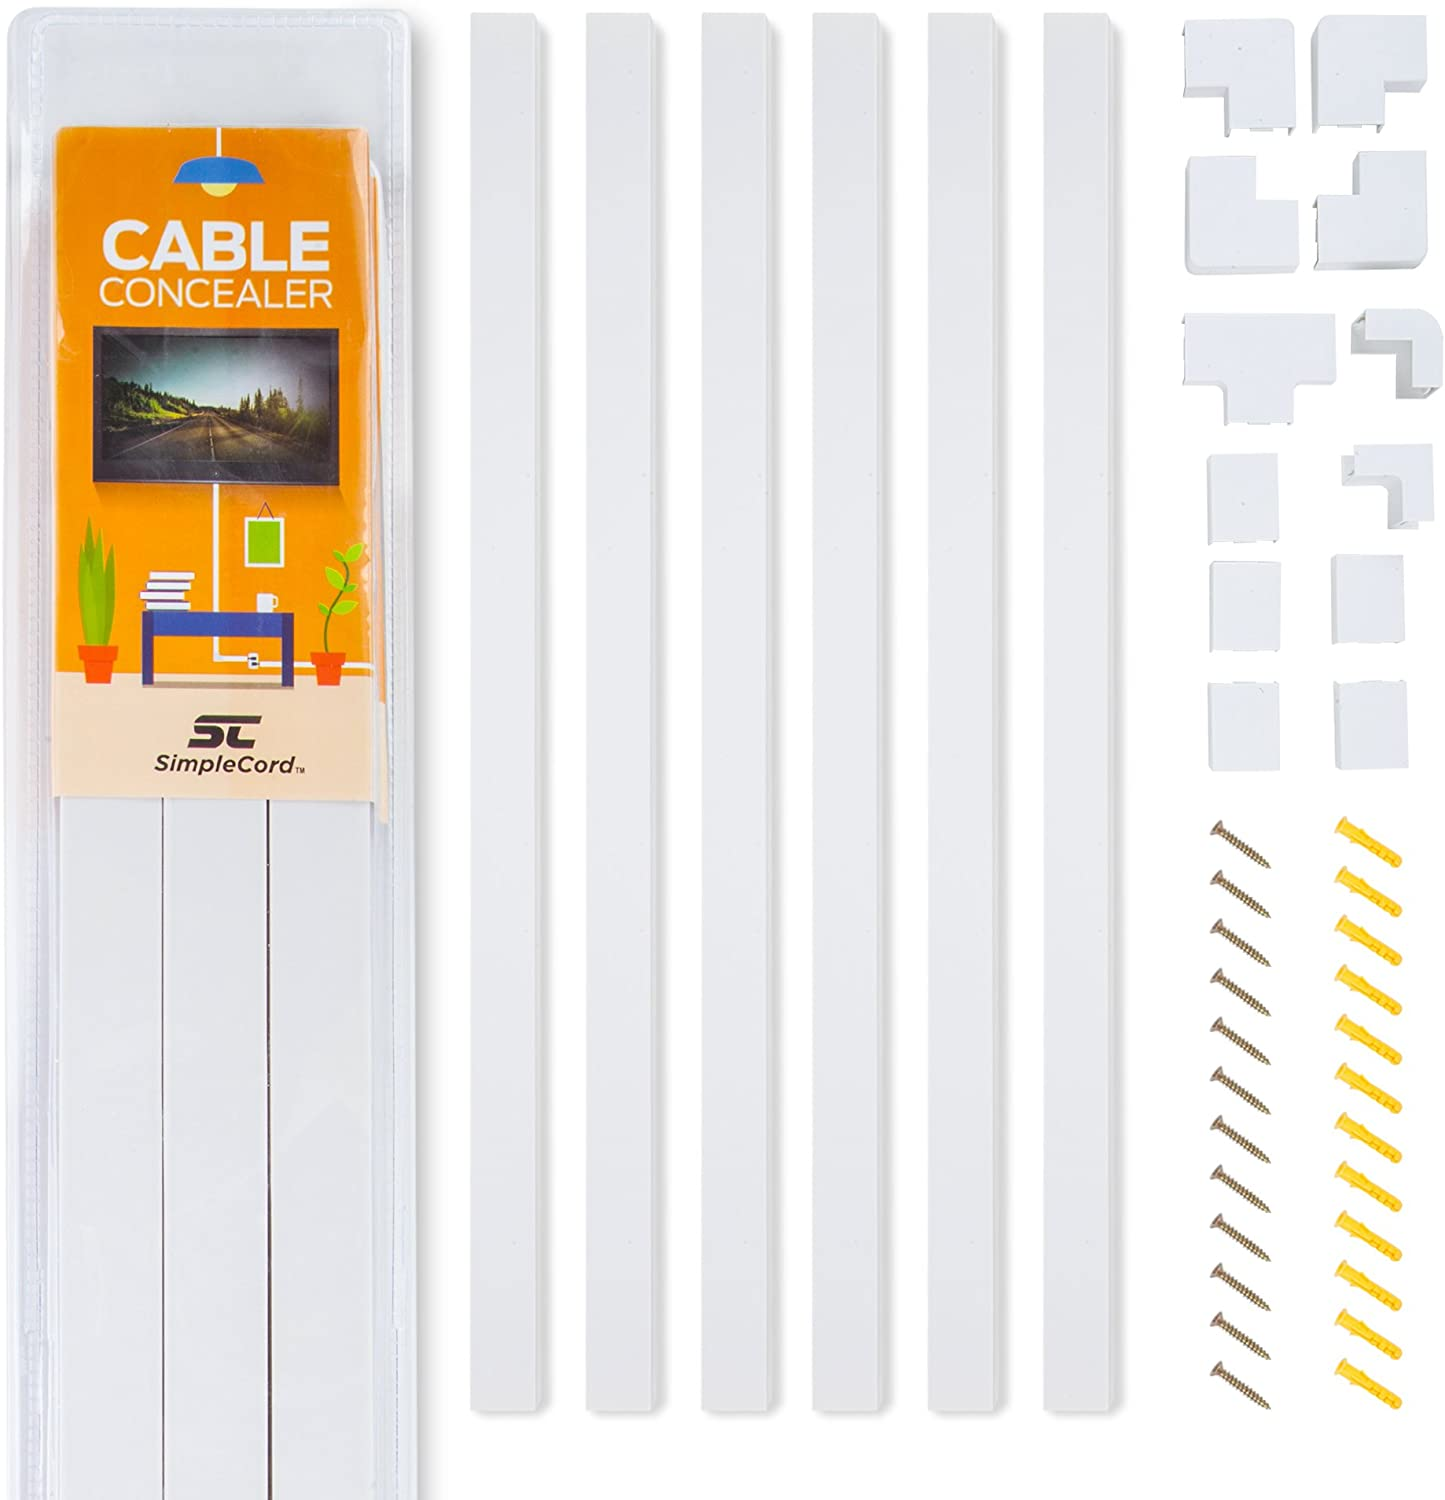 Simple Cord Cable Concealer On-Wall Cord Cover Raceway Kit - Cable on